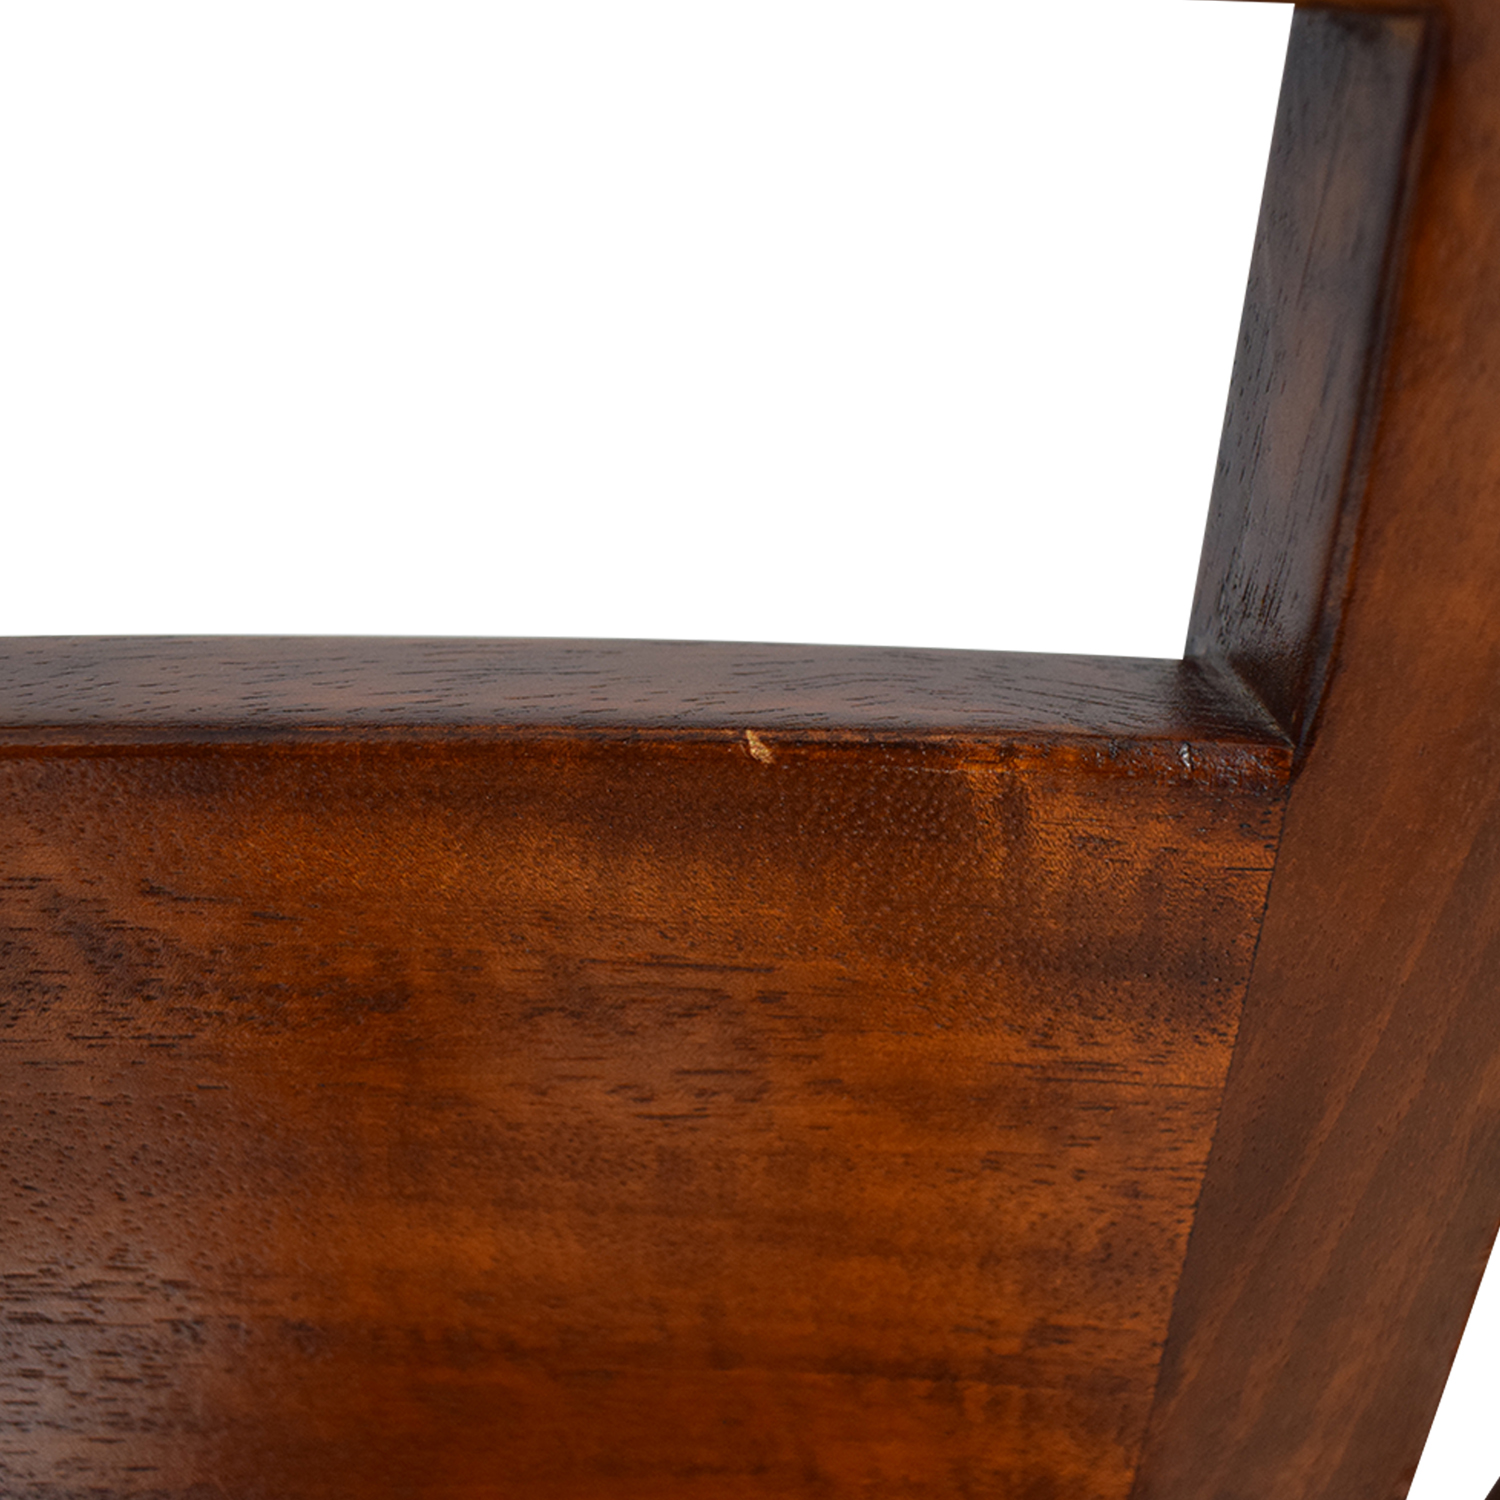 Crate & Barrel Crate & Barrel Basque Honey Wood Dining Chairs on sale